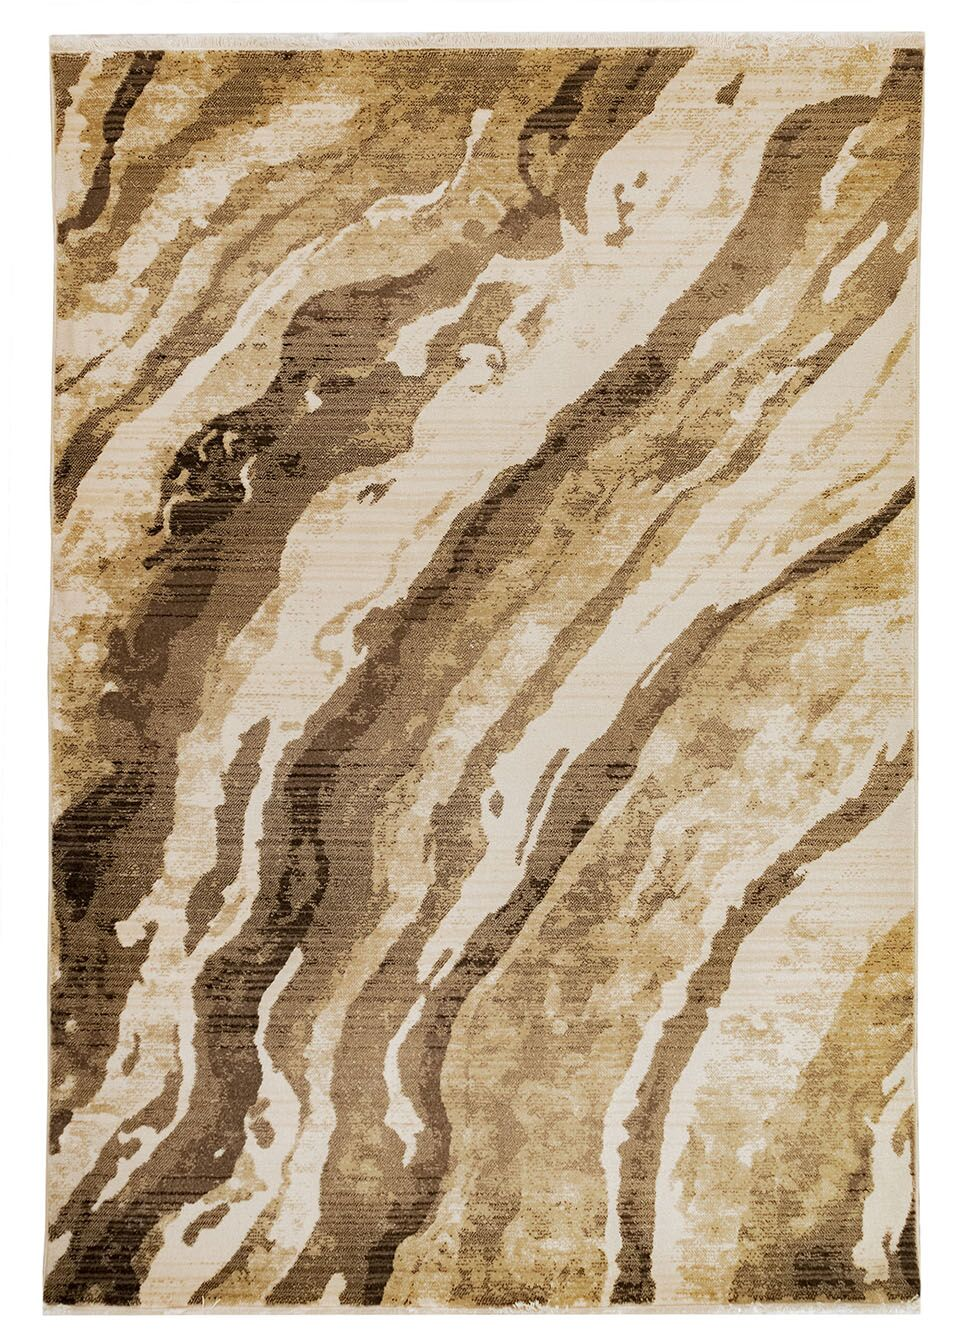 Olive Brown/Beige Area Rug Size: Rectangle 4'11